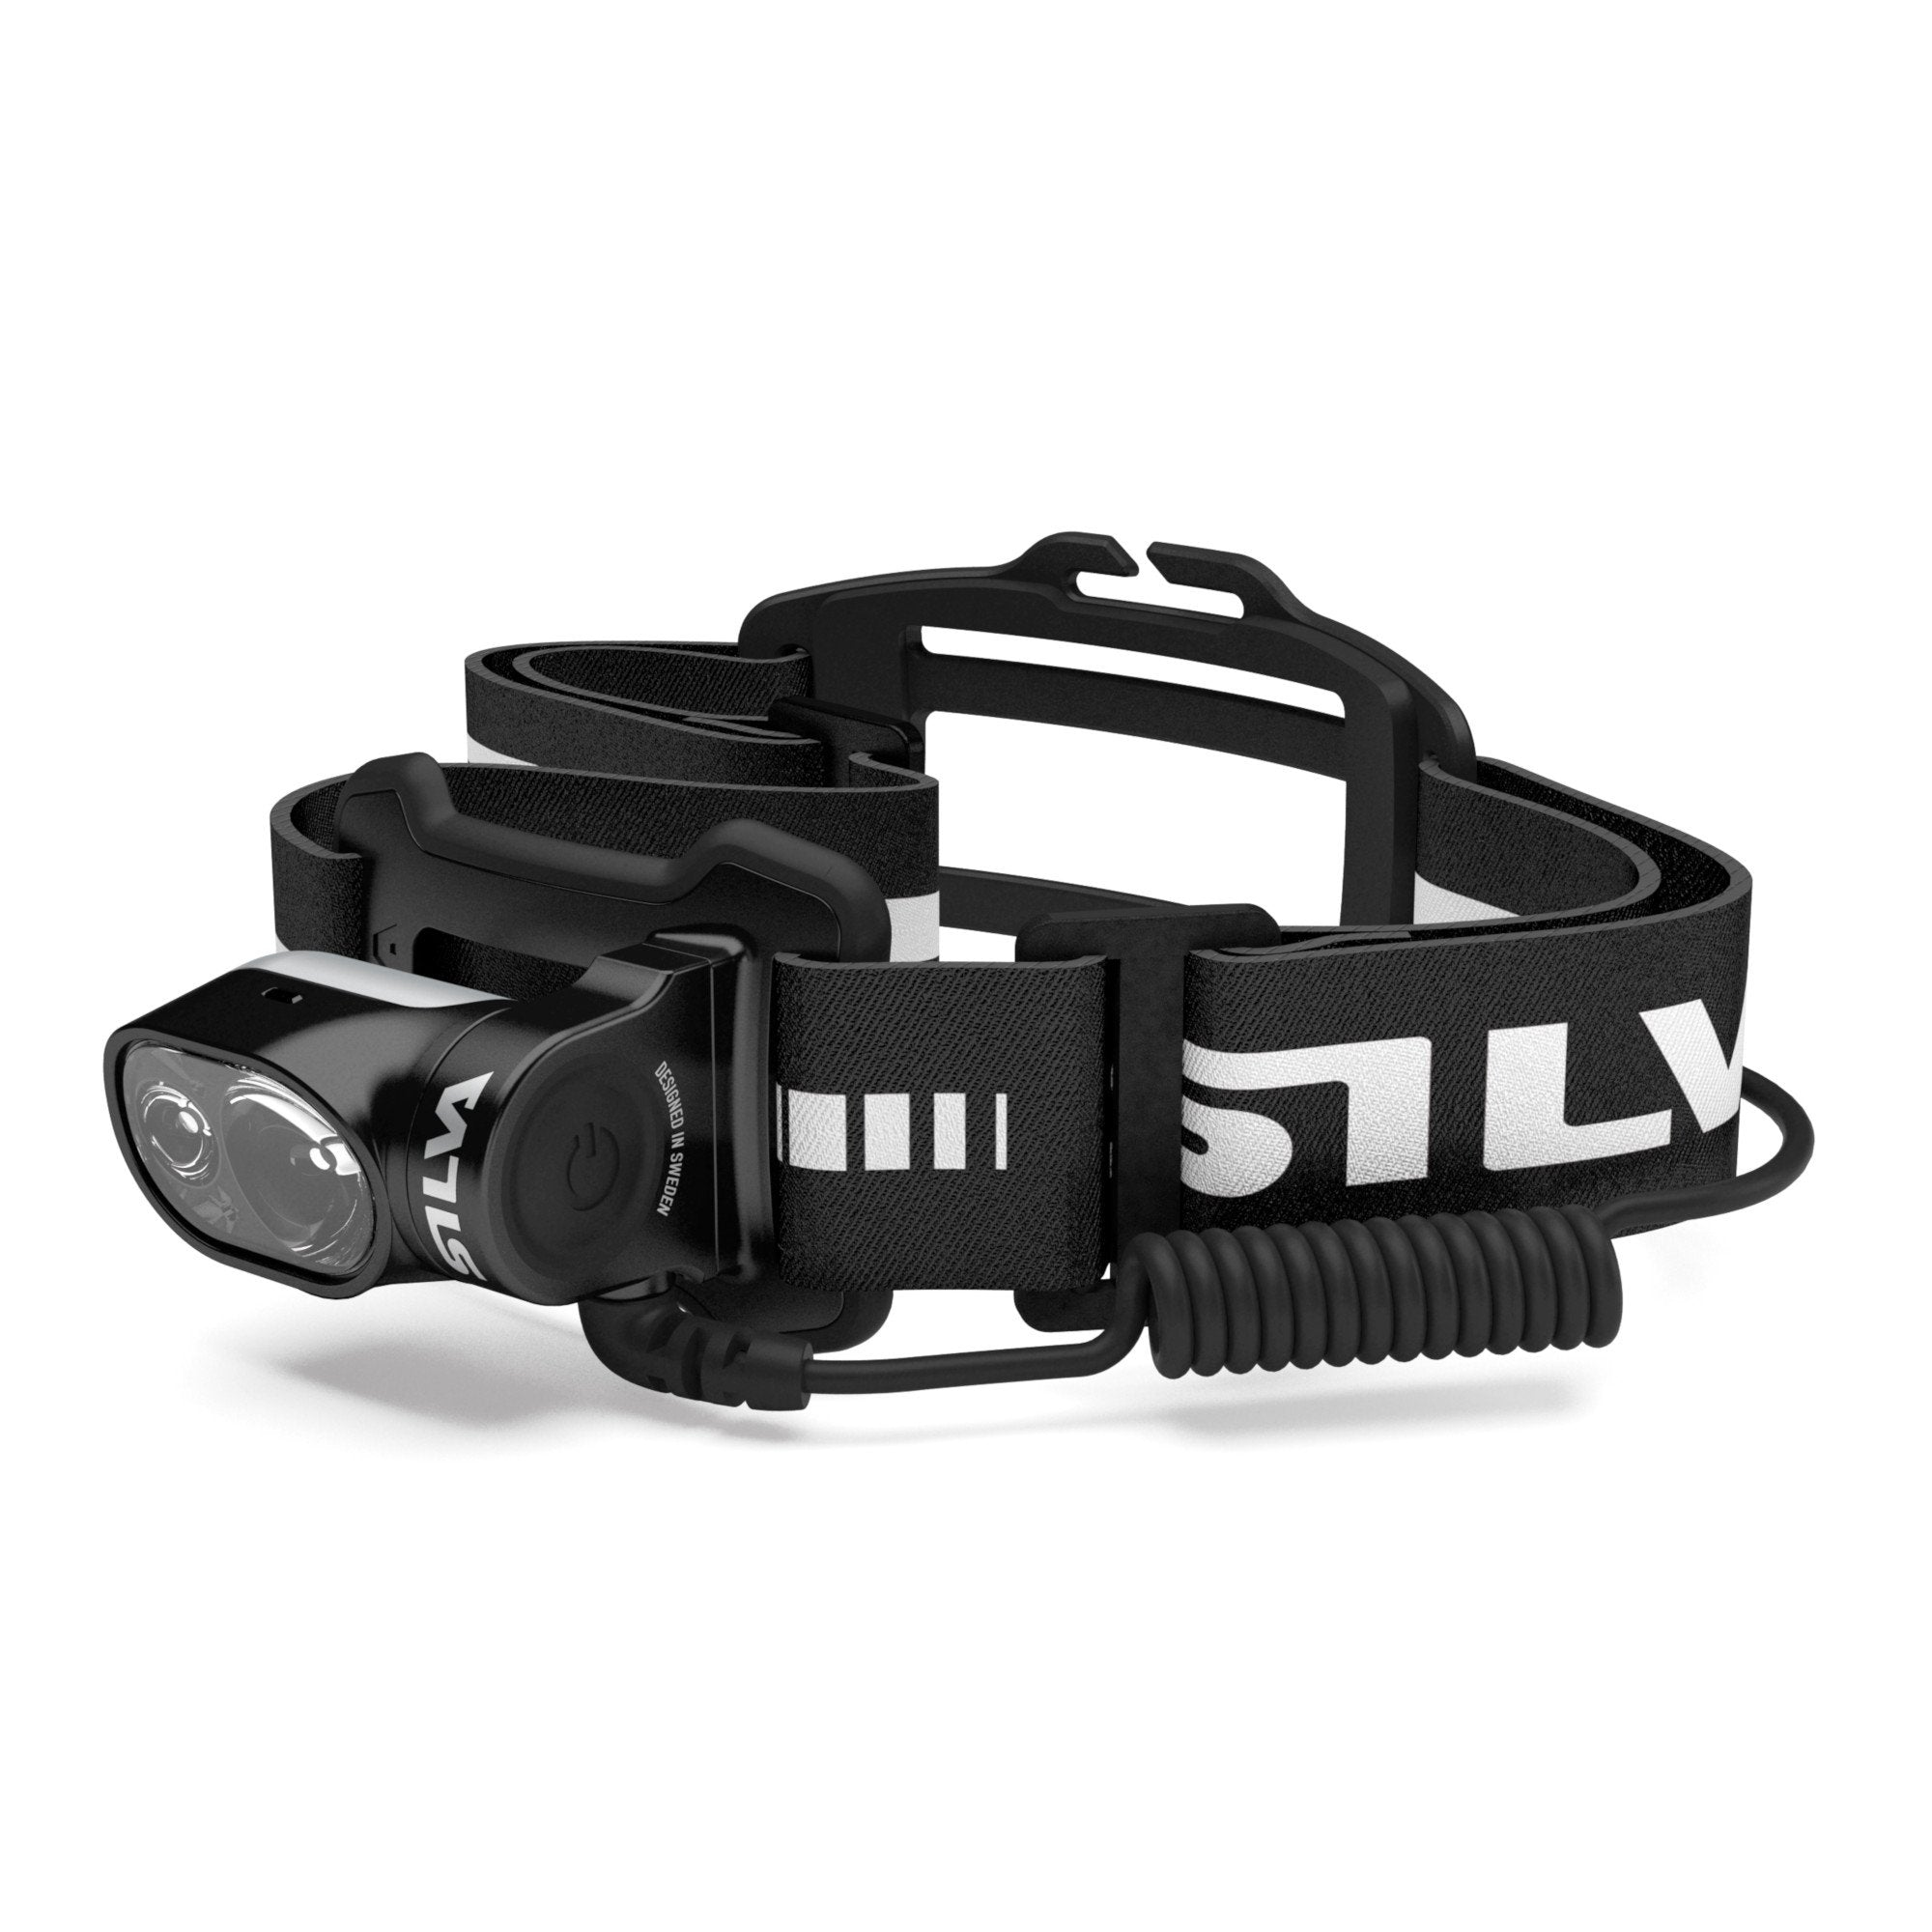 Silva Cross Trail 5 Ultra headlamp, in black colour